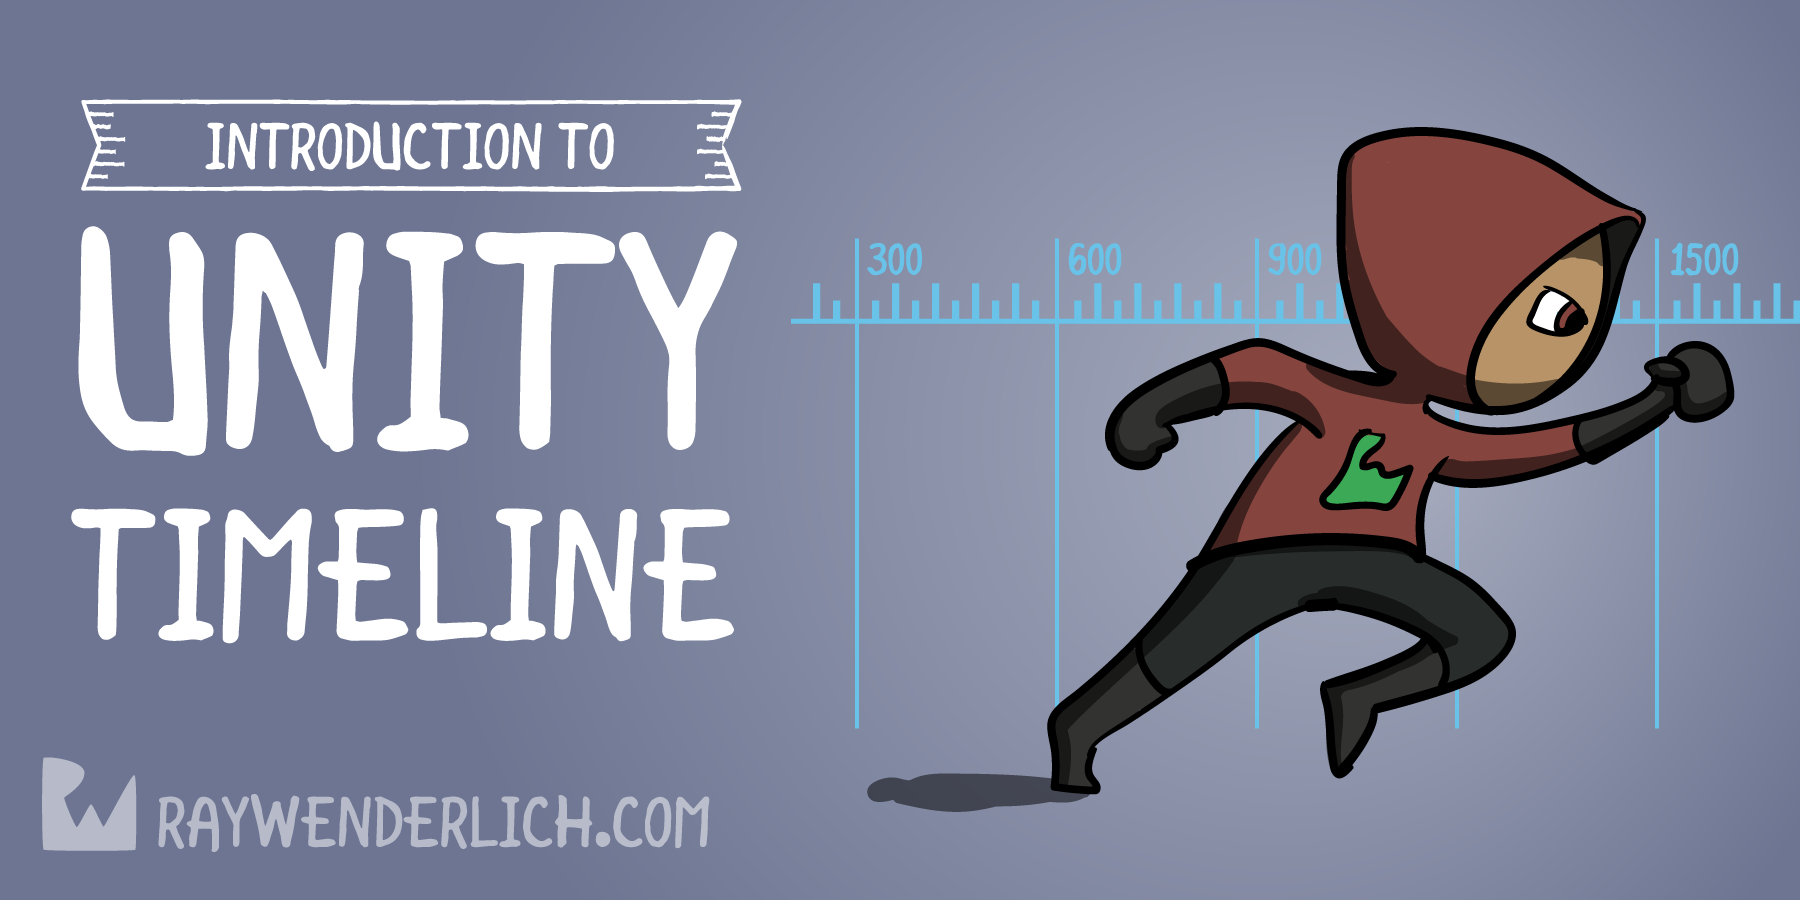 Introduction to Unity Timeline | raywenderlich com